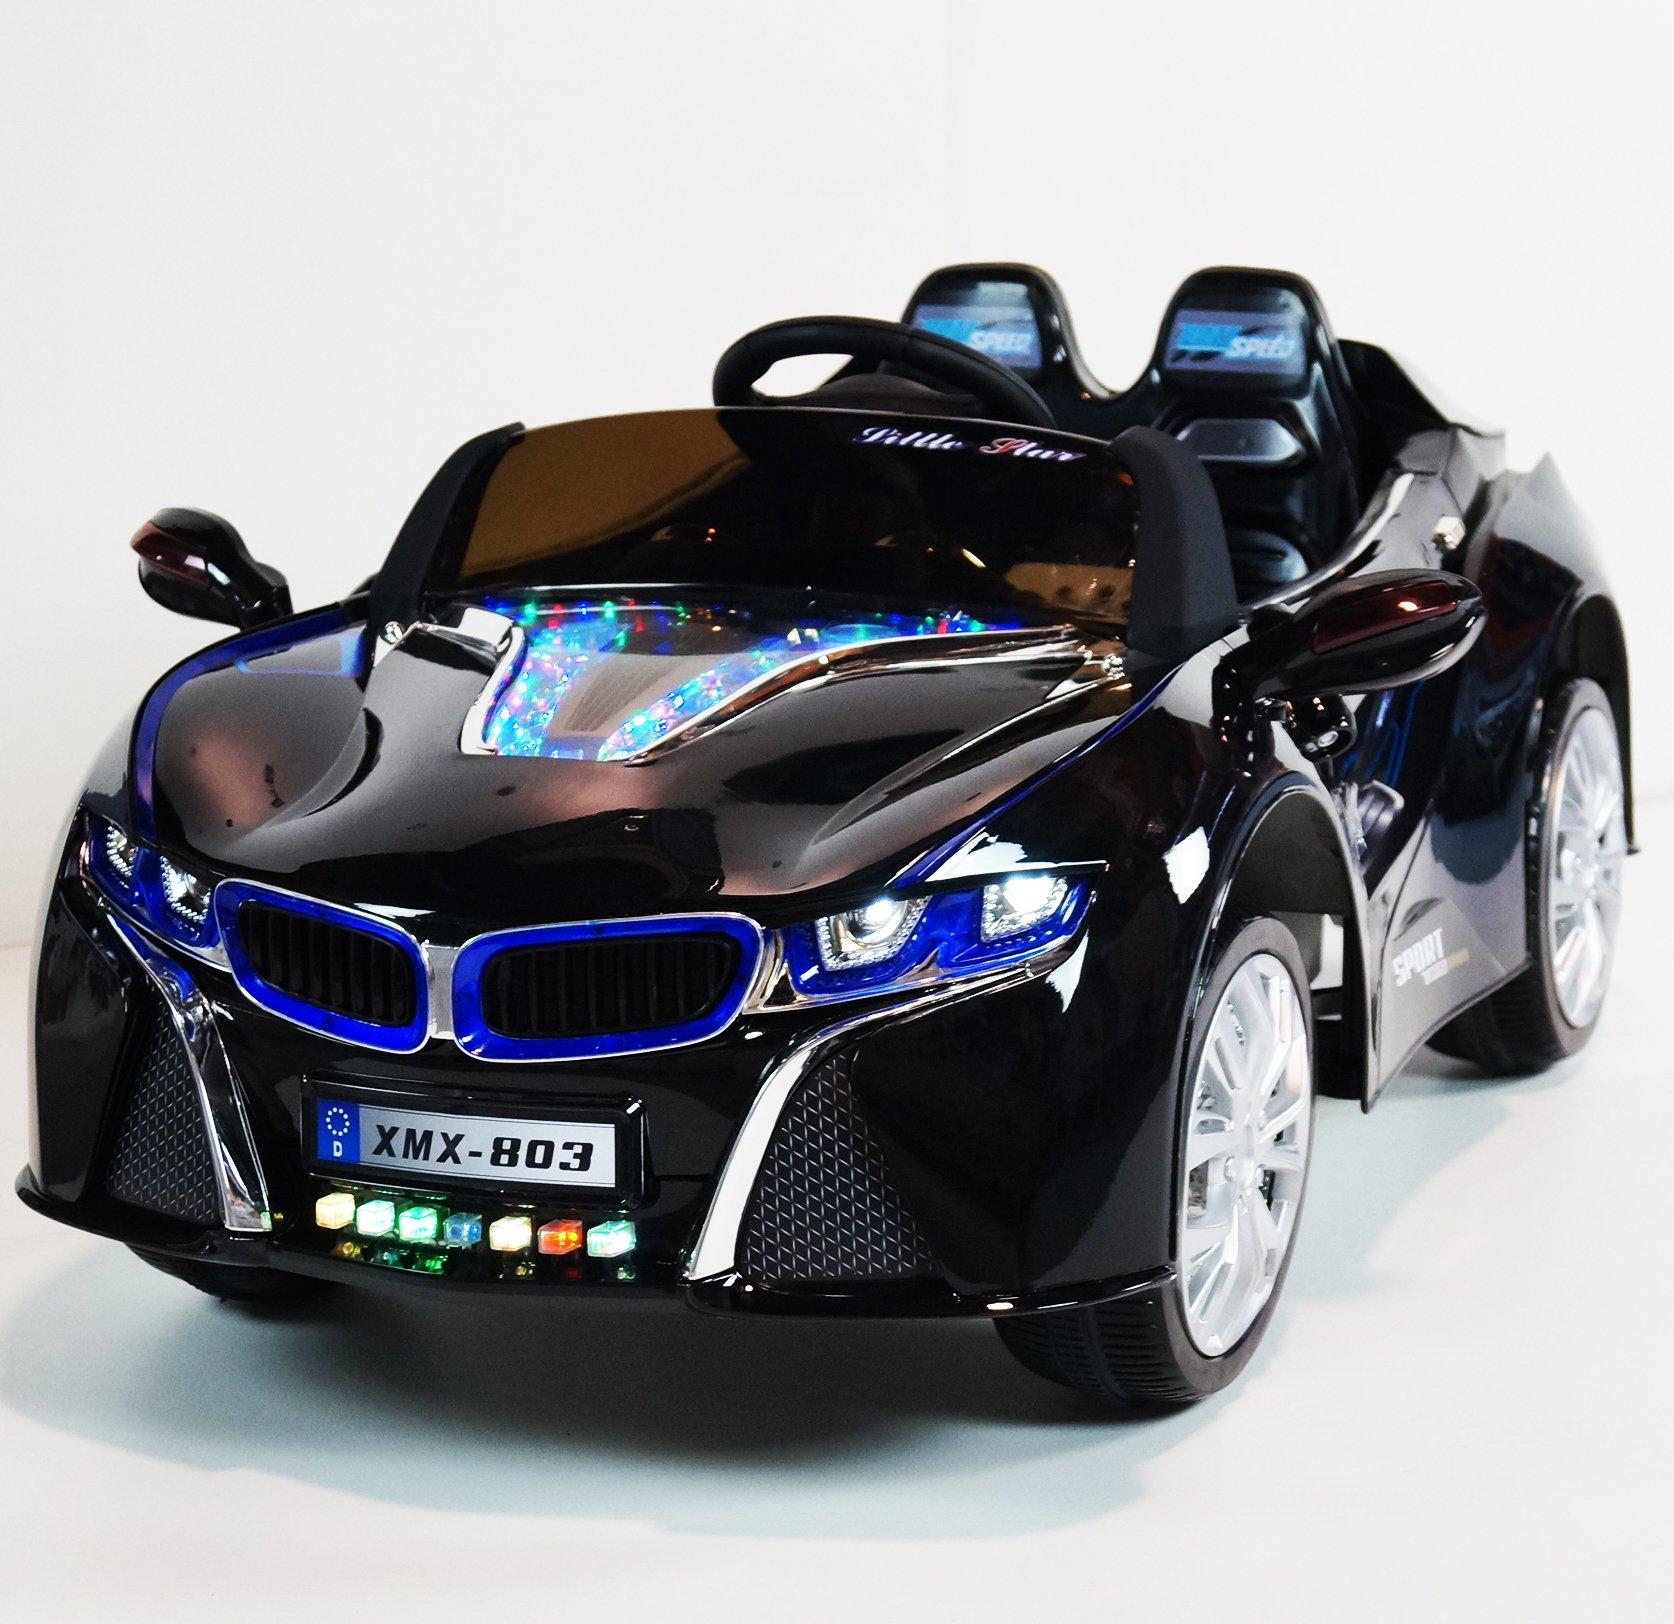 Bmw I8 12v Electric Ride On With Remote Control: BMW I8 Style Ride On Toy Car For Kids With Remote Control